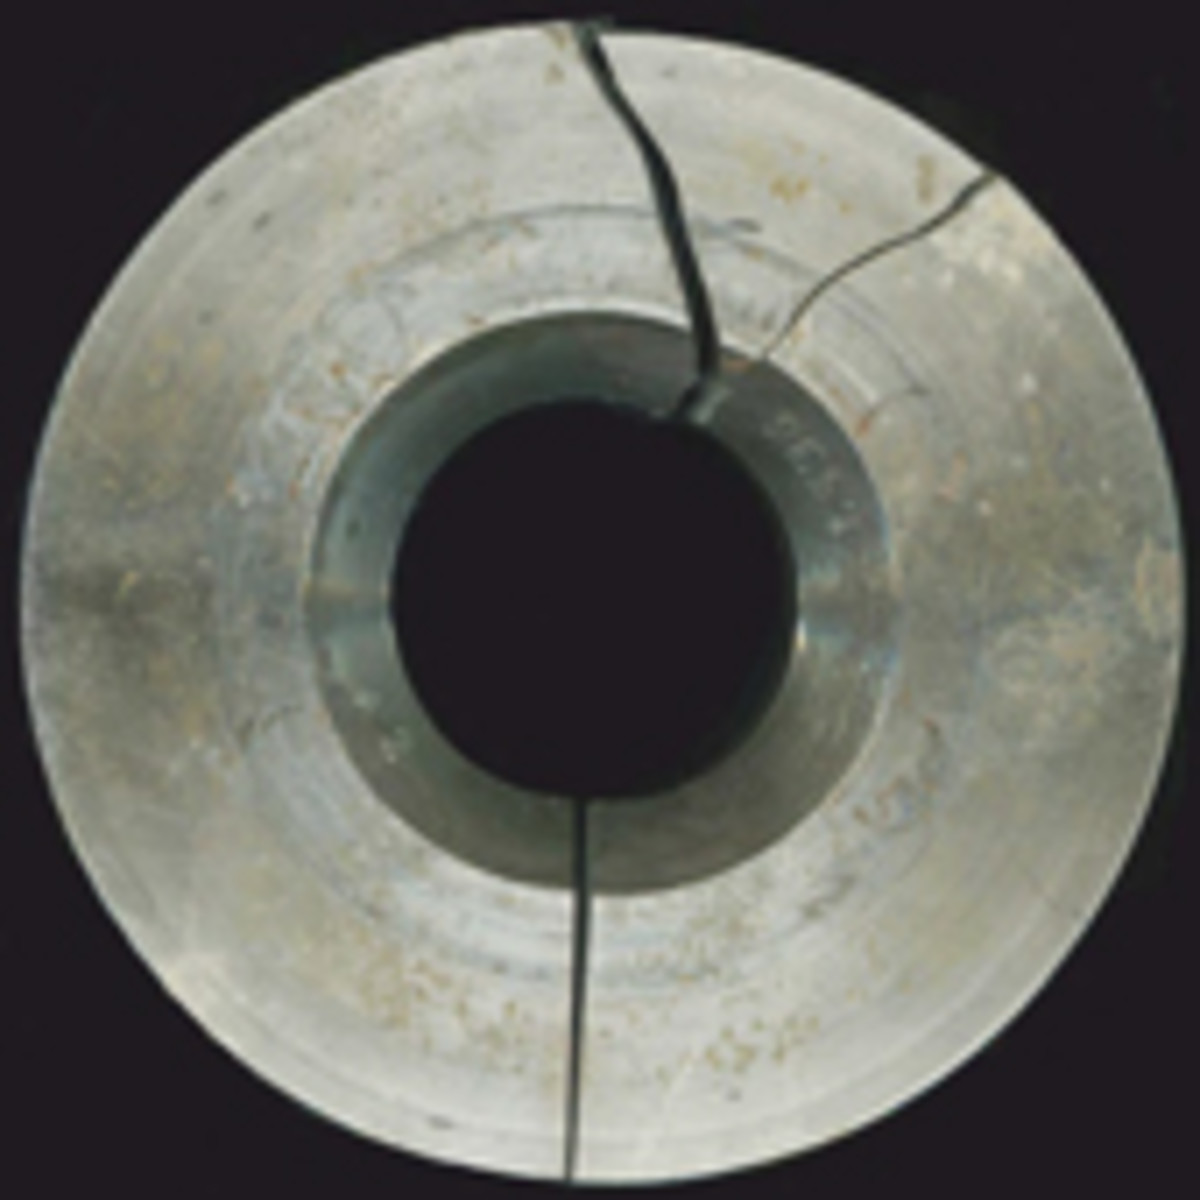 Double Collar Cuds are formed when the collar die breaks, allowing metal to flow outwards.